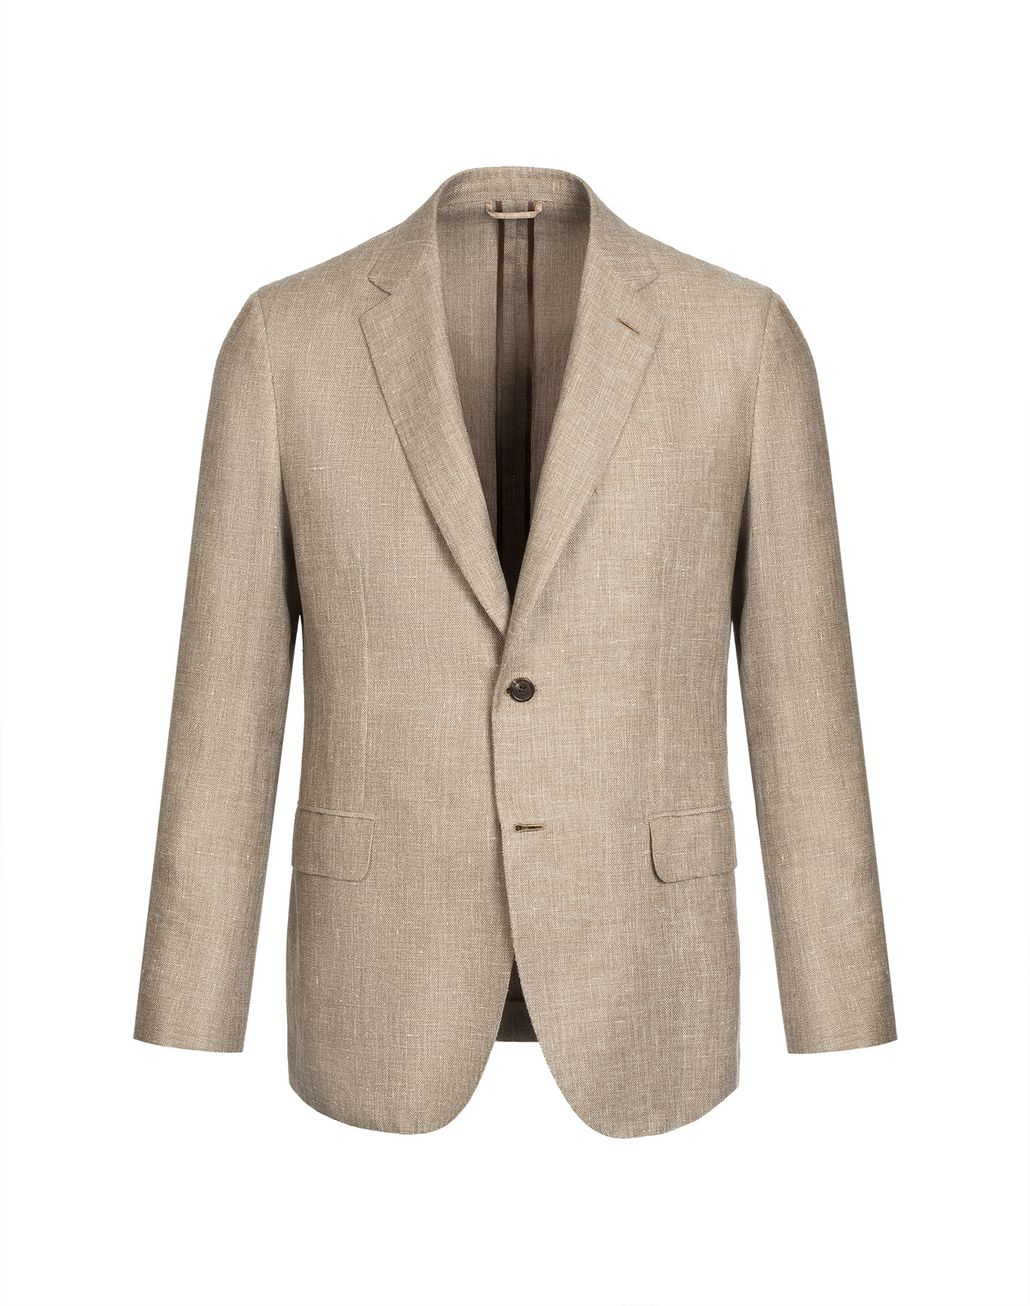 BRIONI Beige Hopsack Linen Plume Jacket Suits & Jackets Man f